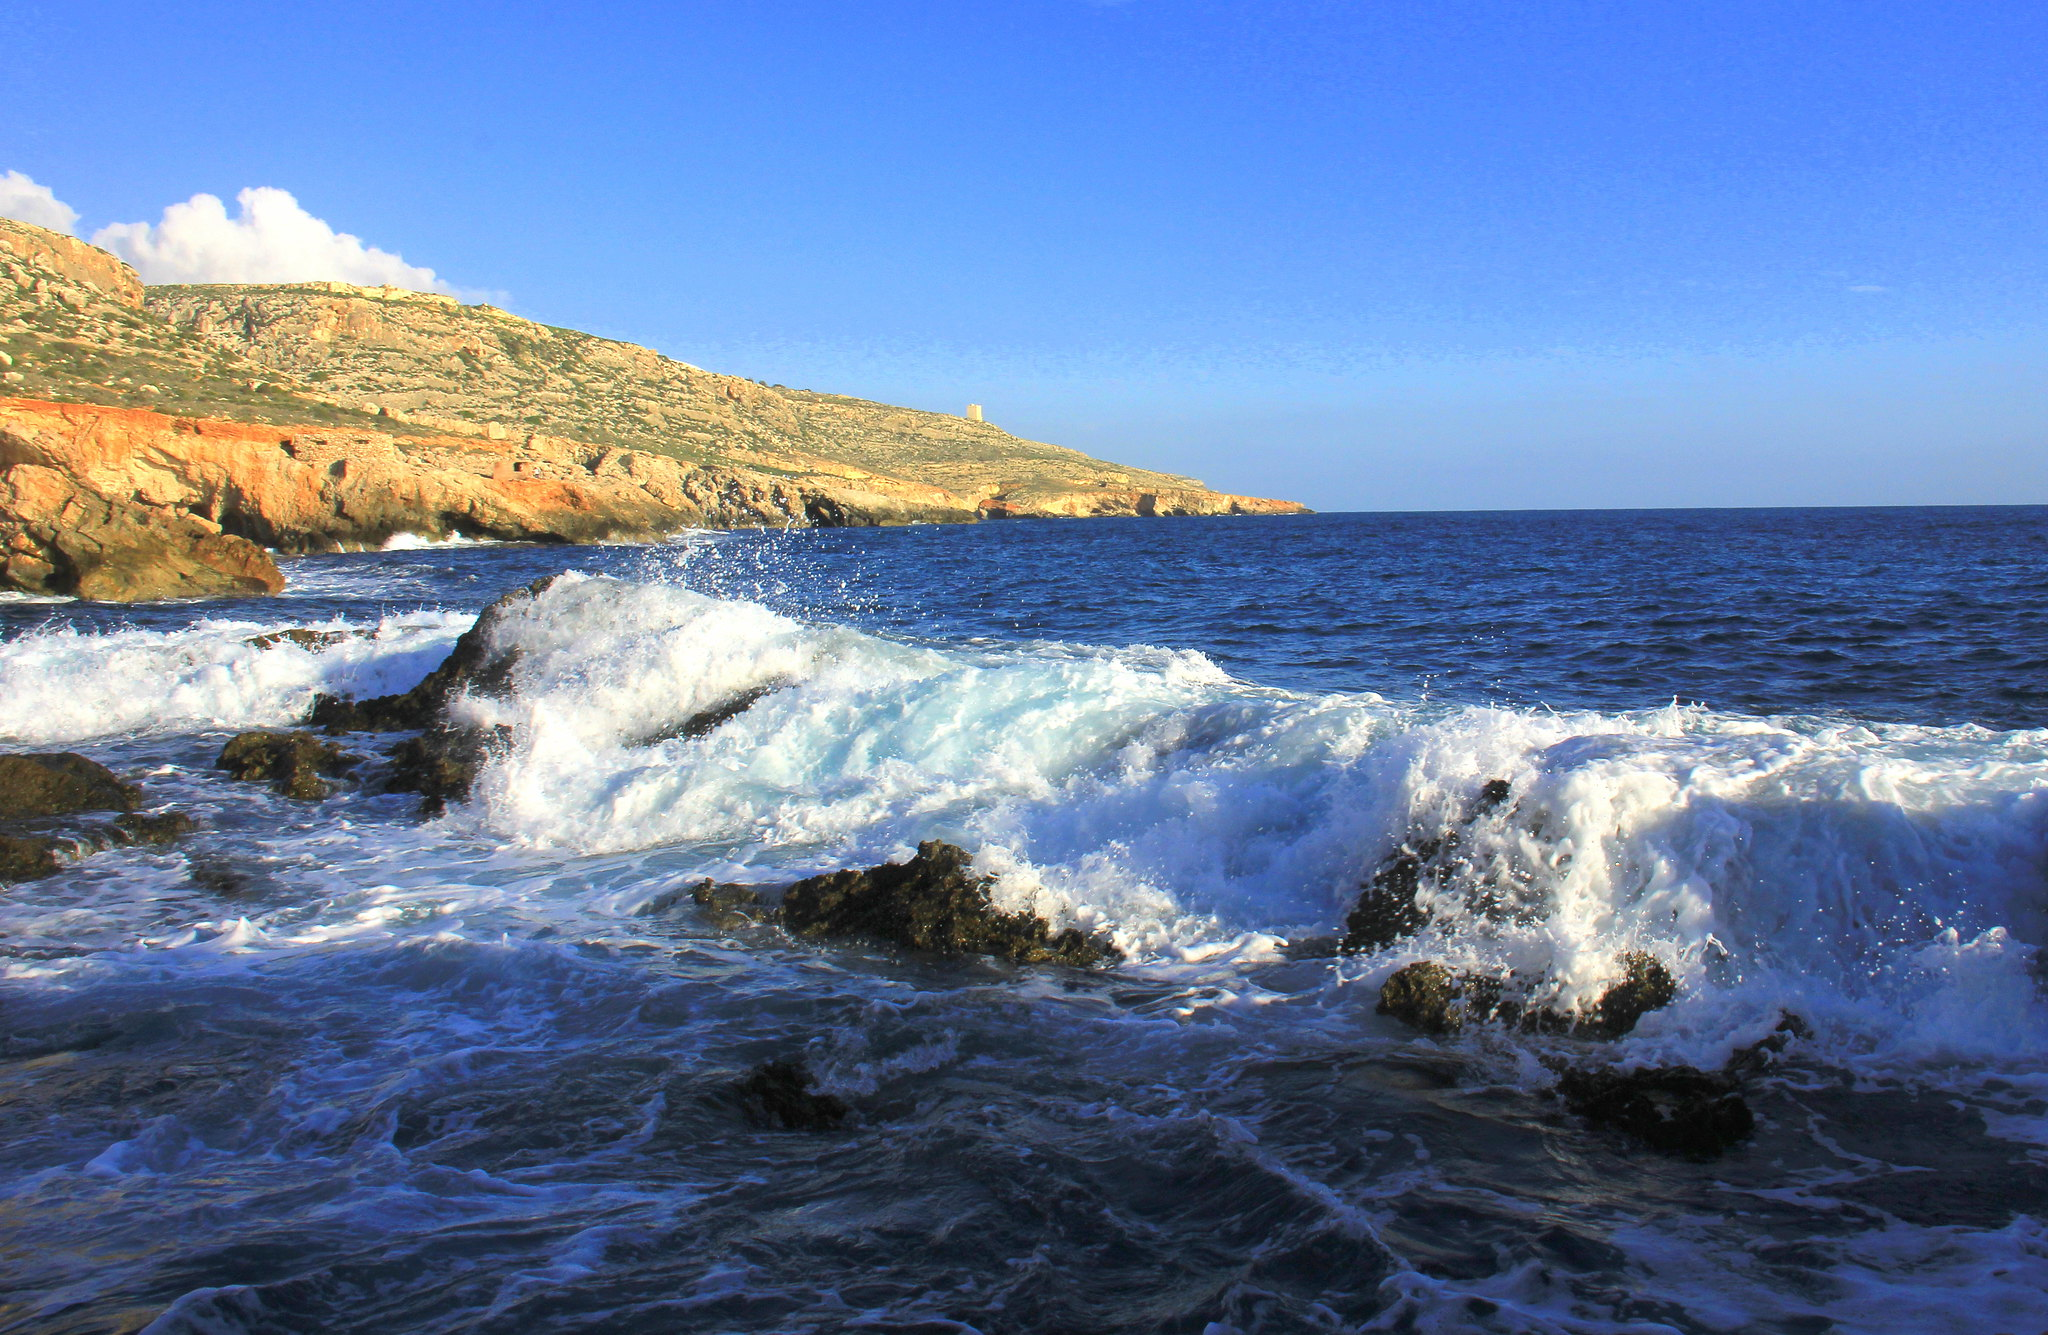 Little coves, Blue Lagoon and beautiful beaches welcome you to visit Malta